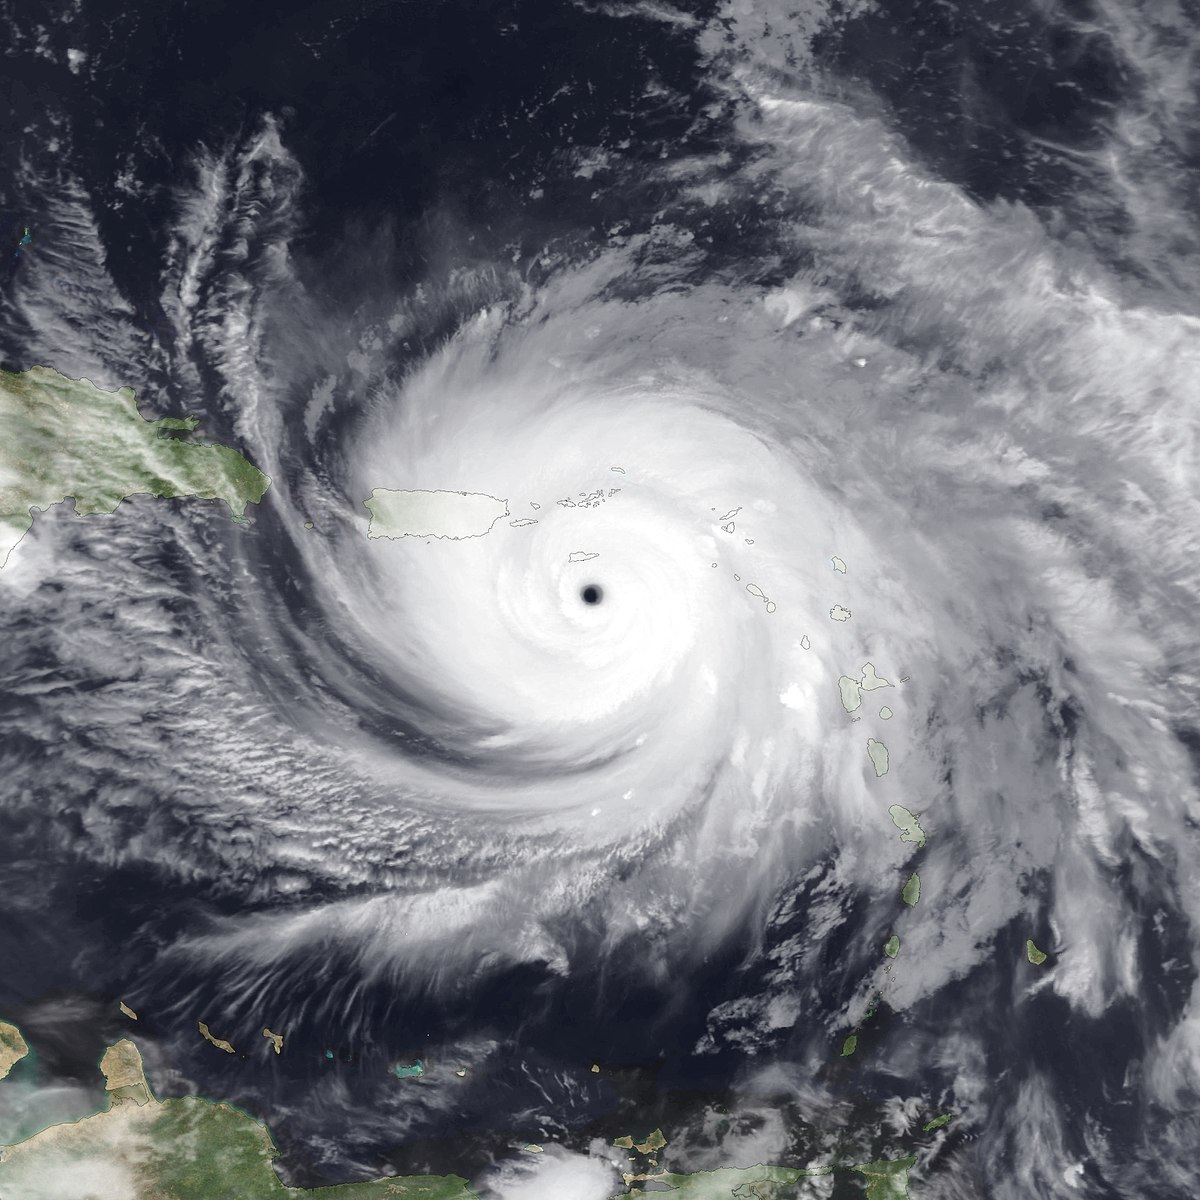 Category 5 Hurricane Maria – The Aftermath – Now What?